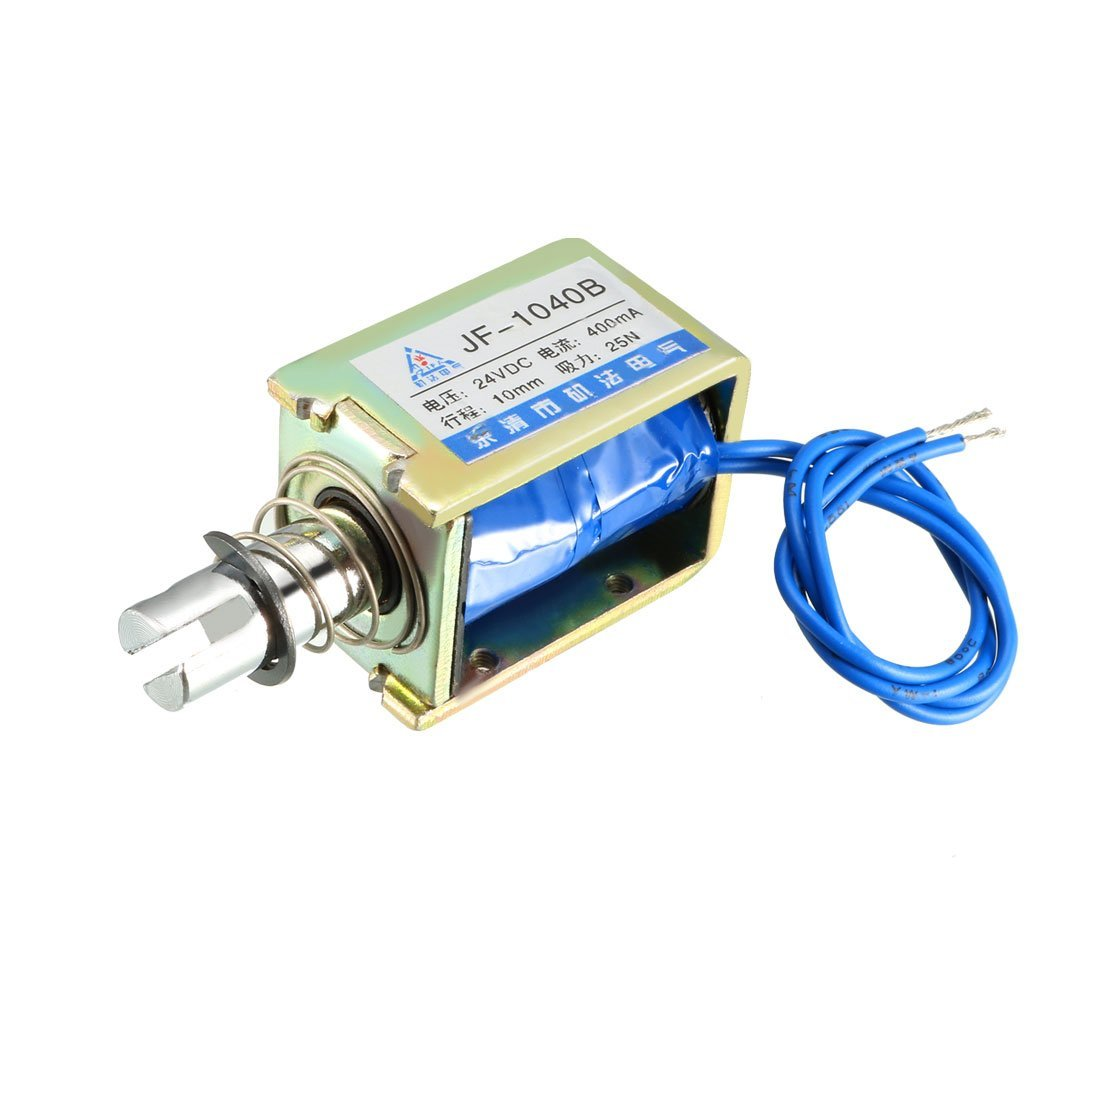 uxcell JF-1040B DC 24V 400mA 25N 10mm Pull Push Type Open Frame Linear Motion Solenoid Electromagnet